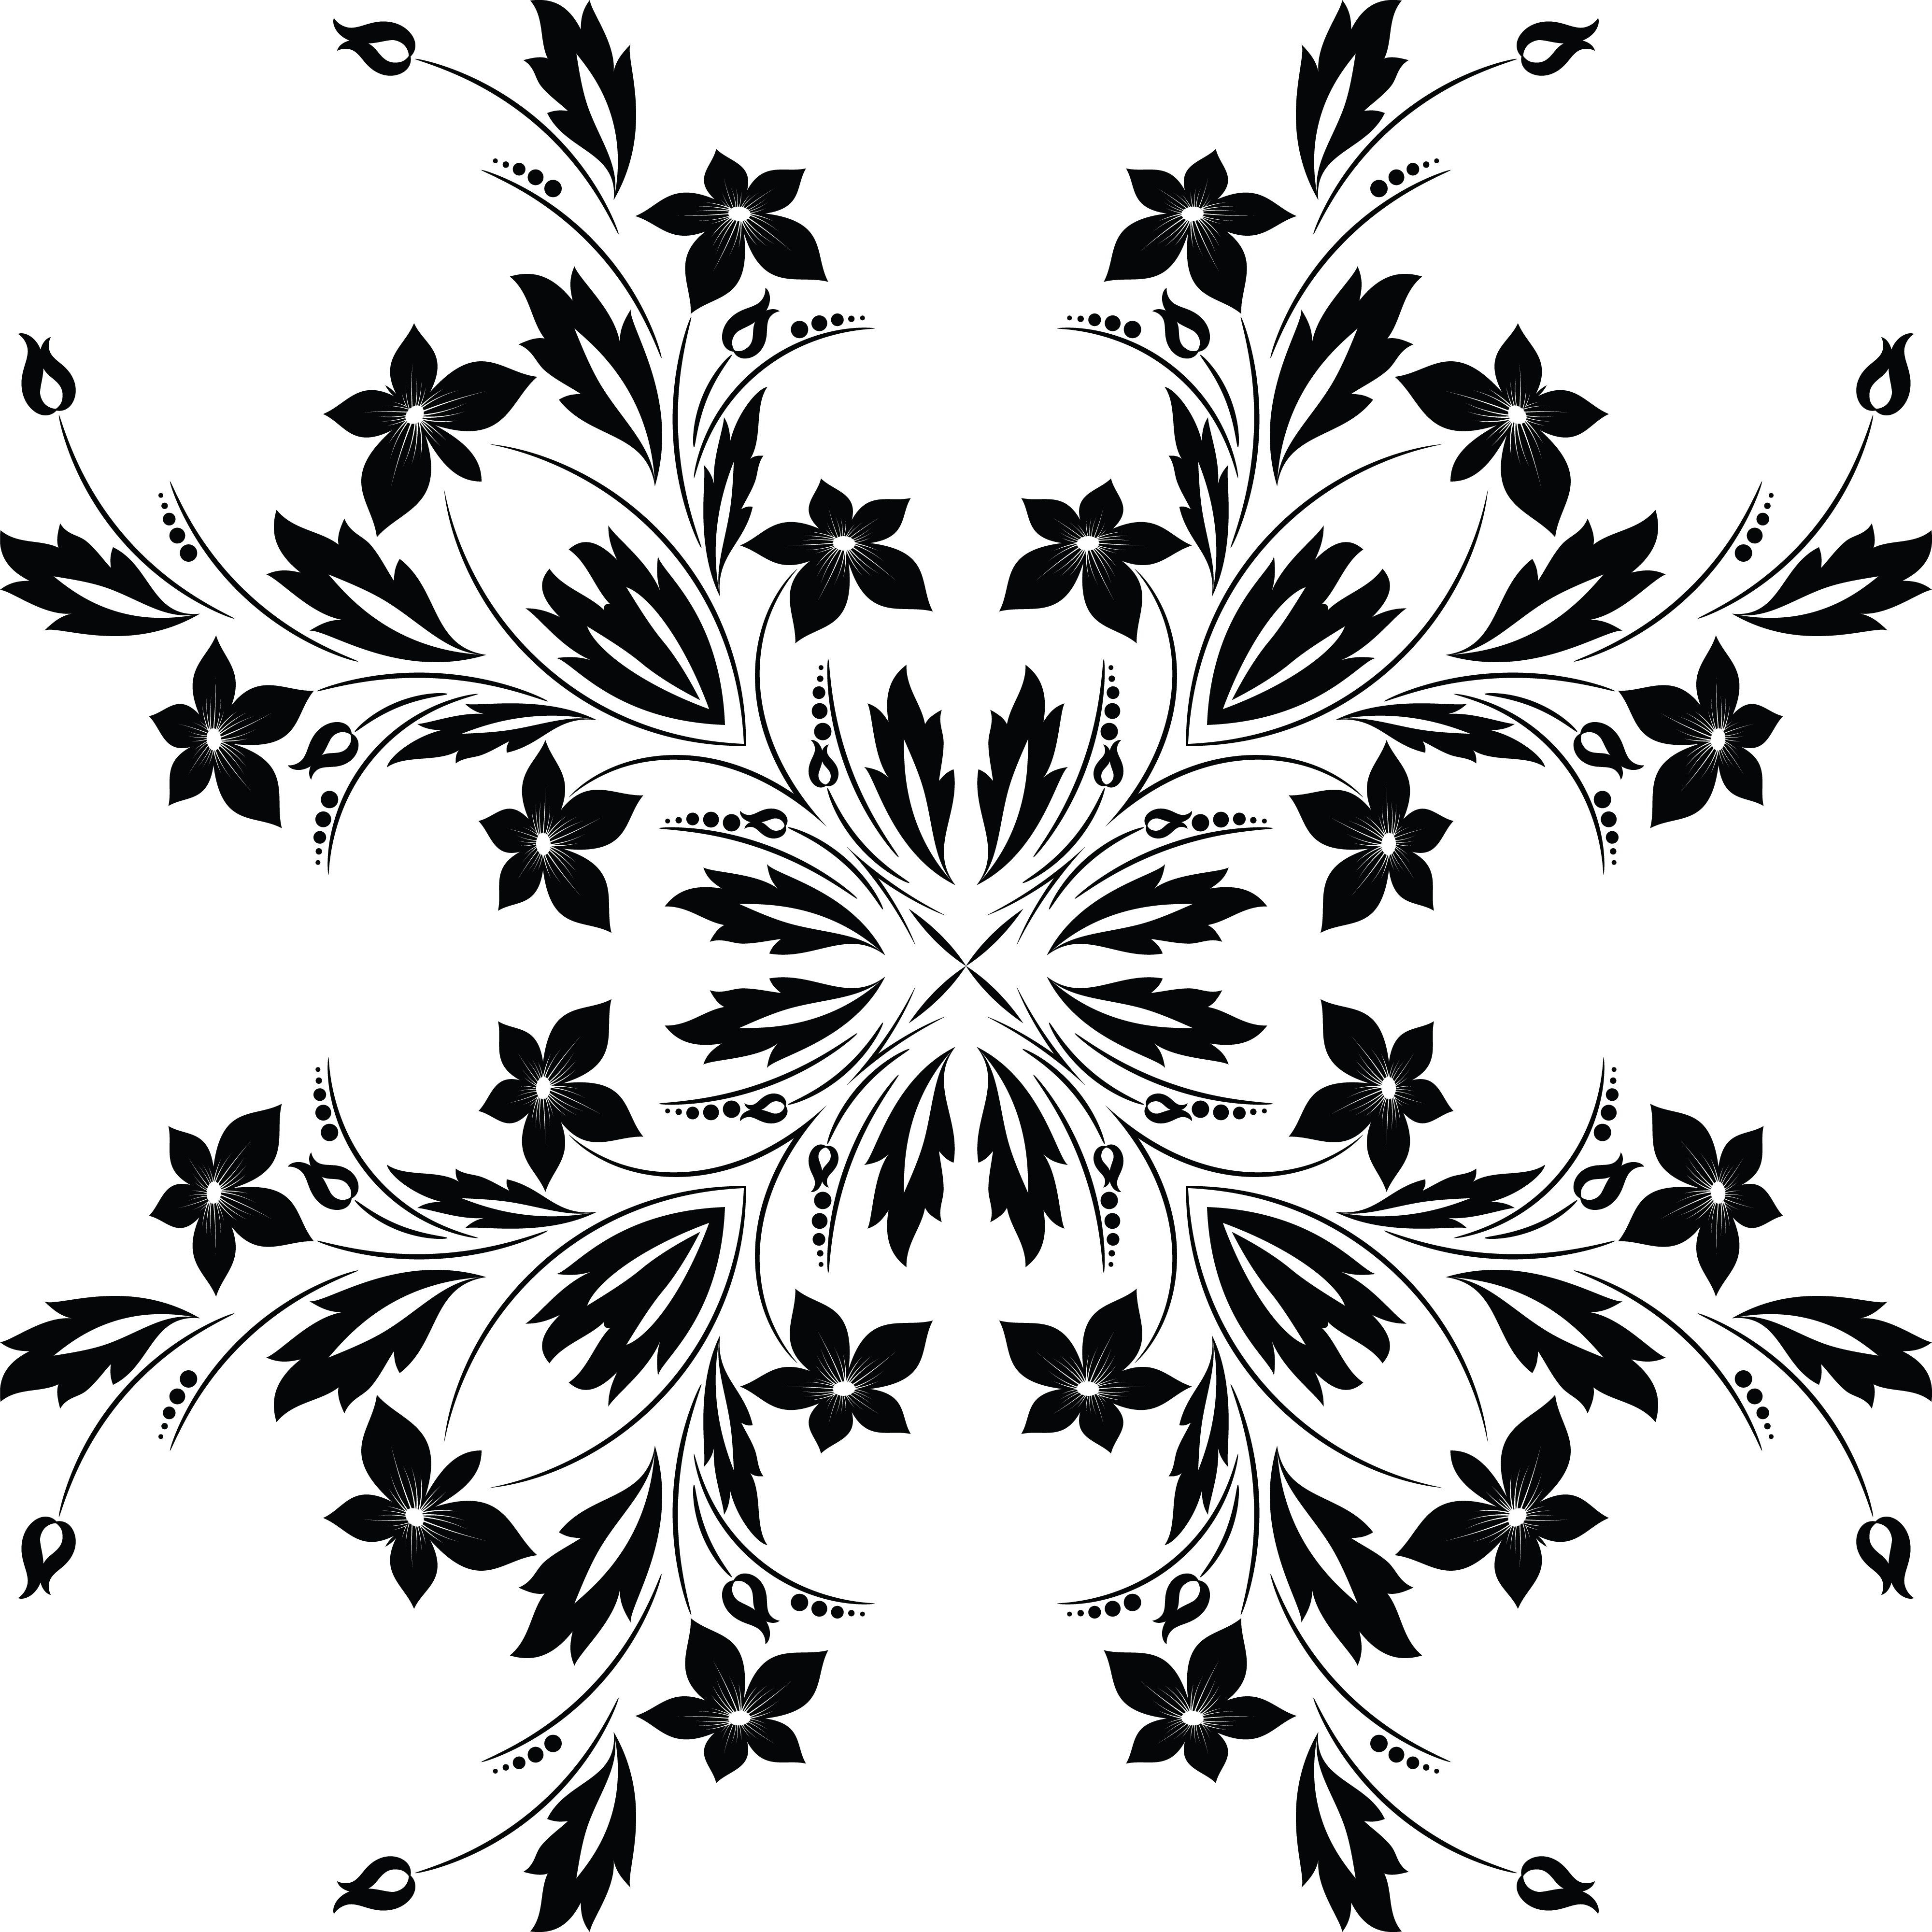 Free Clipart Of Floral Vine Design Element Black And White Version